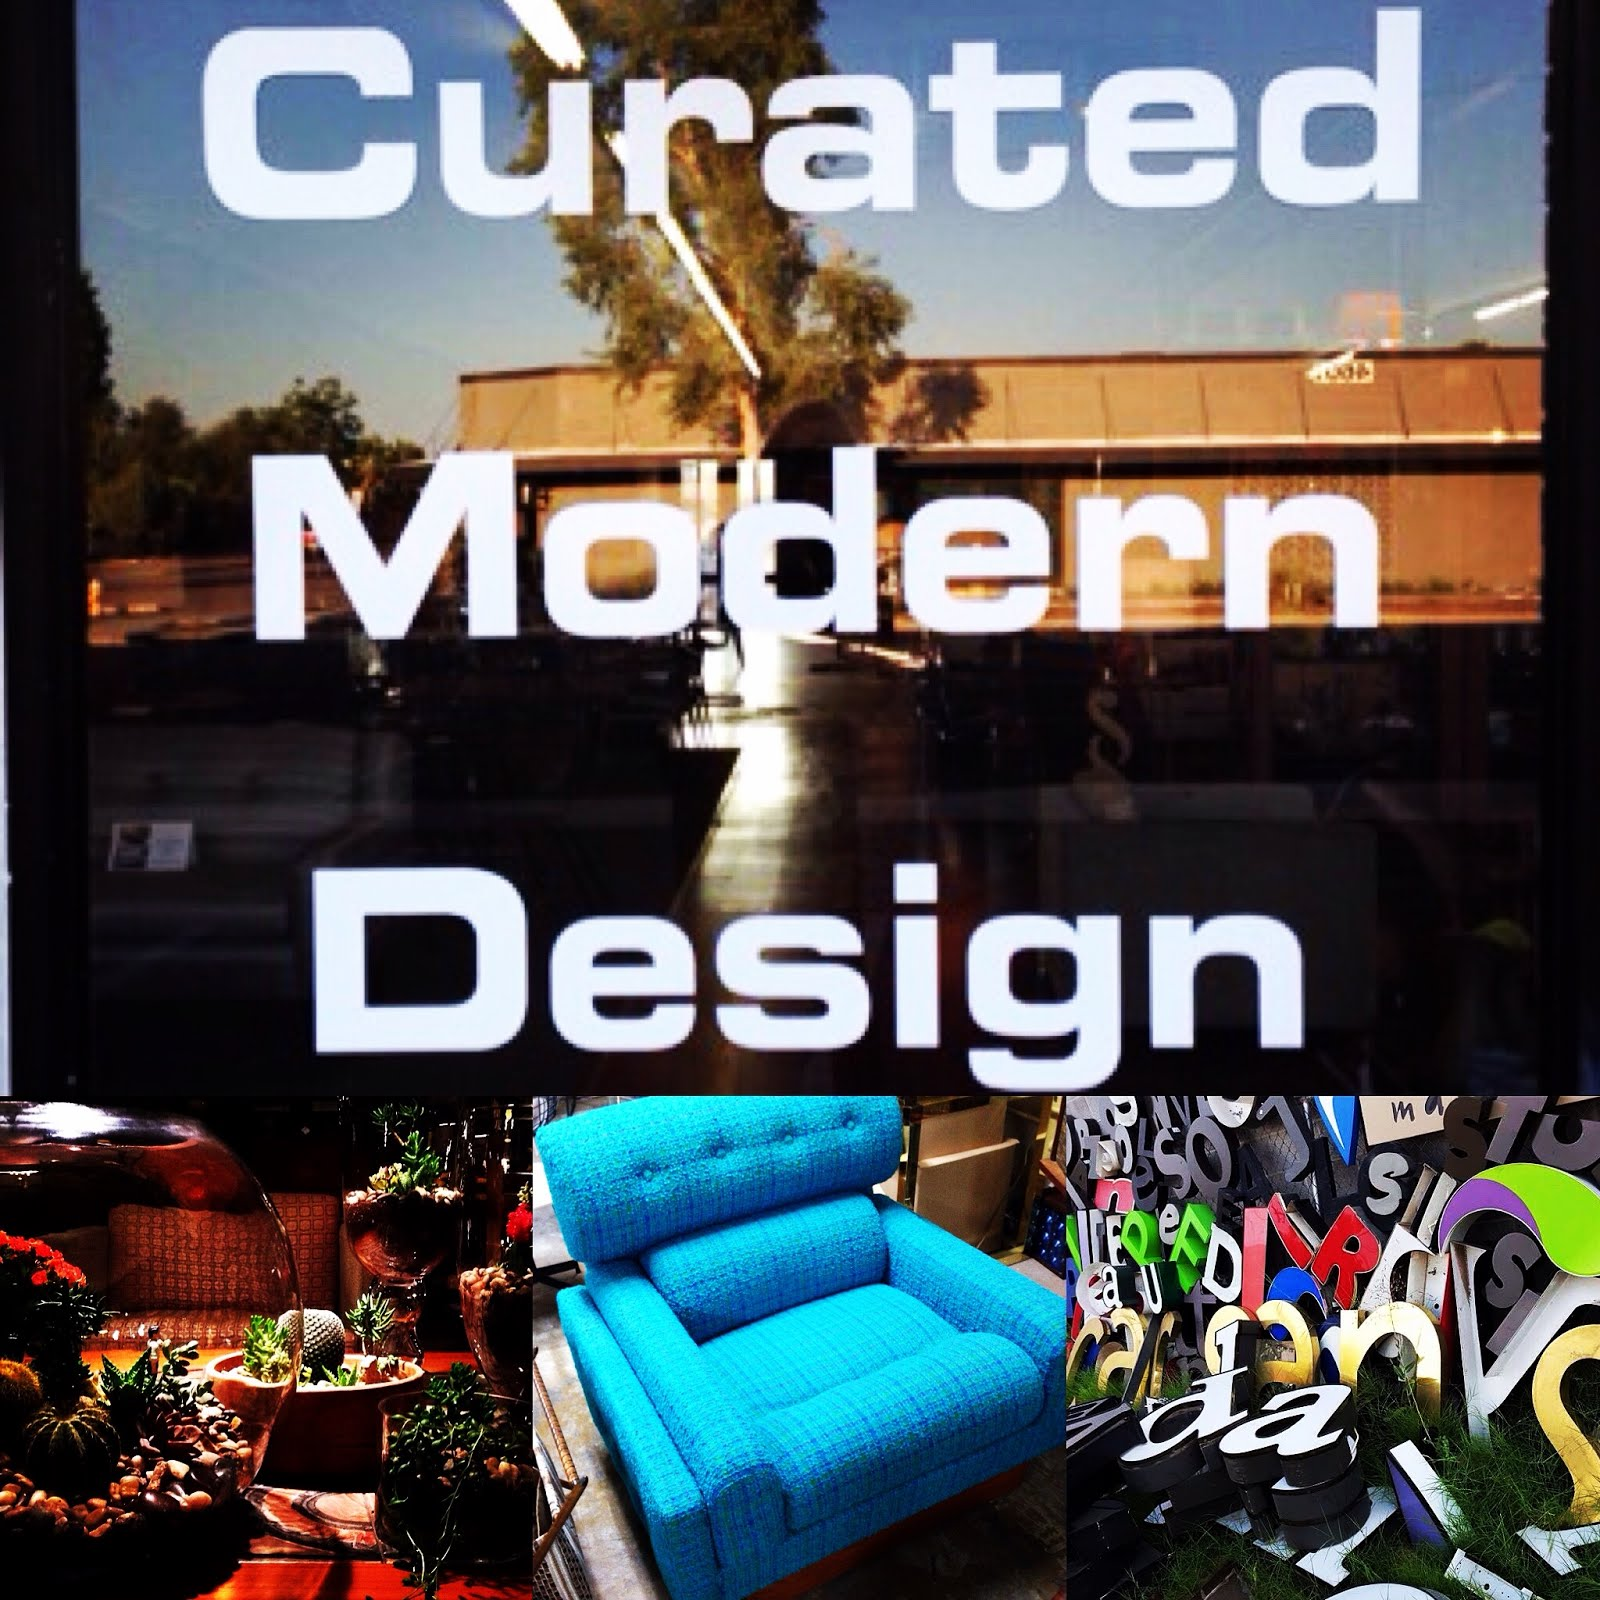 Shop 'Modern Life' at C-MOD Curated Modern Design in Phoenix, AZ